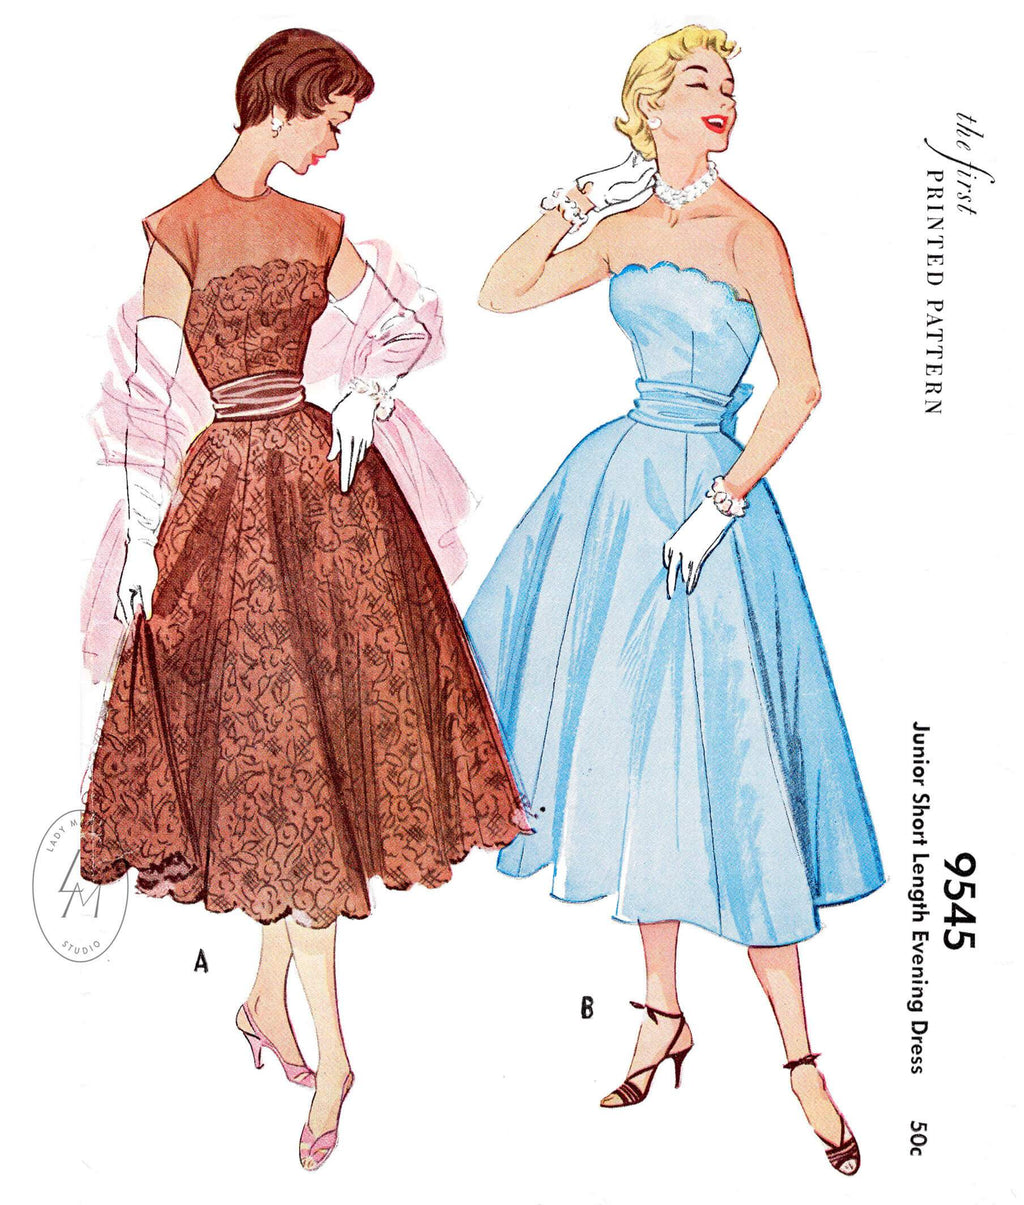 1950s 1953 cocktail evening party dress  McCall's 9545 lace scallop edge bustier full skirt cummerbund waist vintage sewing pattern reproduction